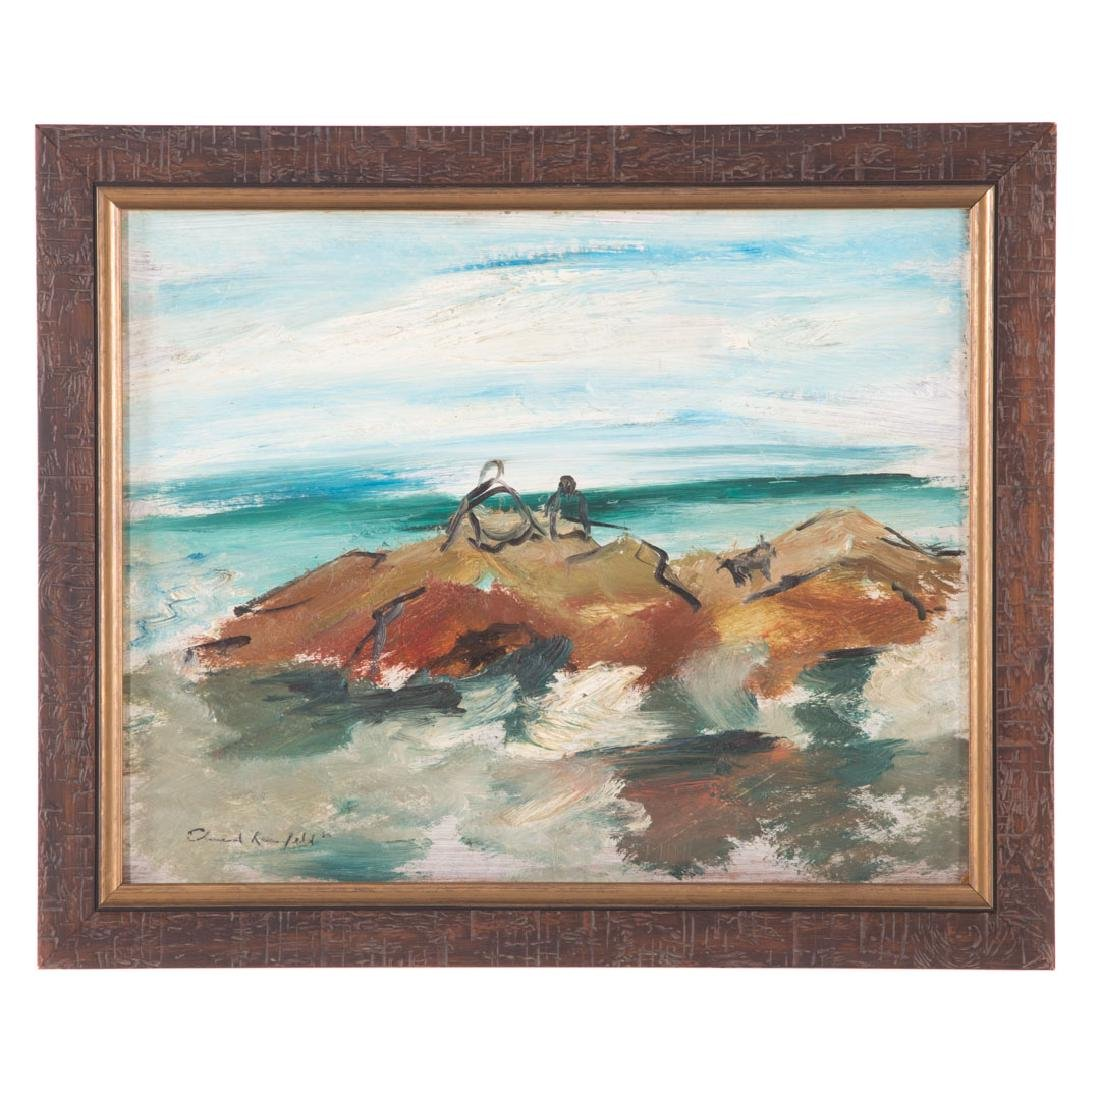 Edward Rosenfeld. Figures on Rocky Coast, oil